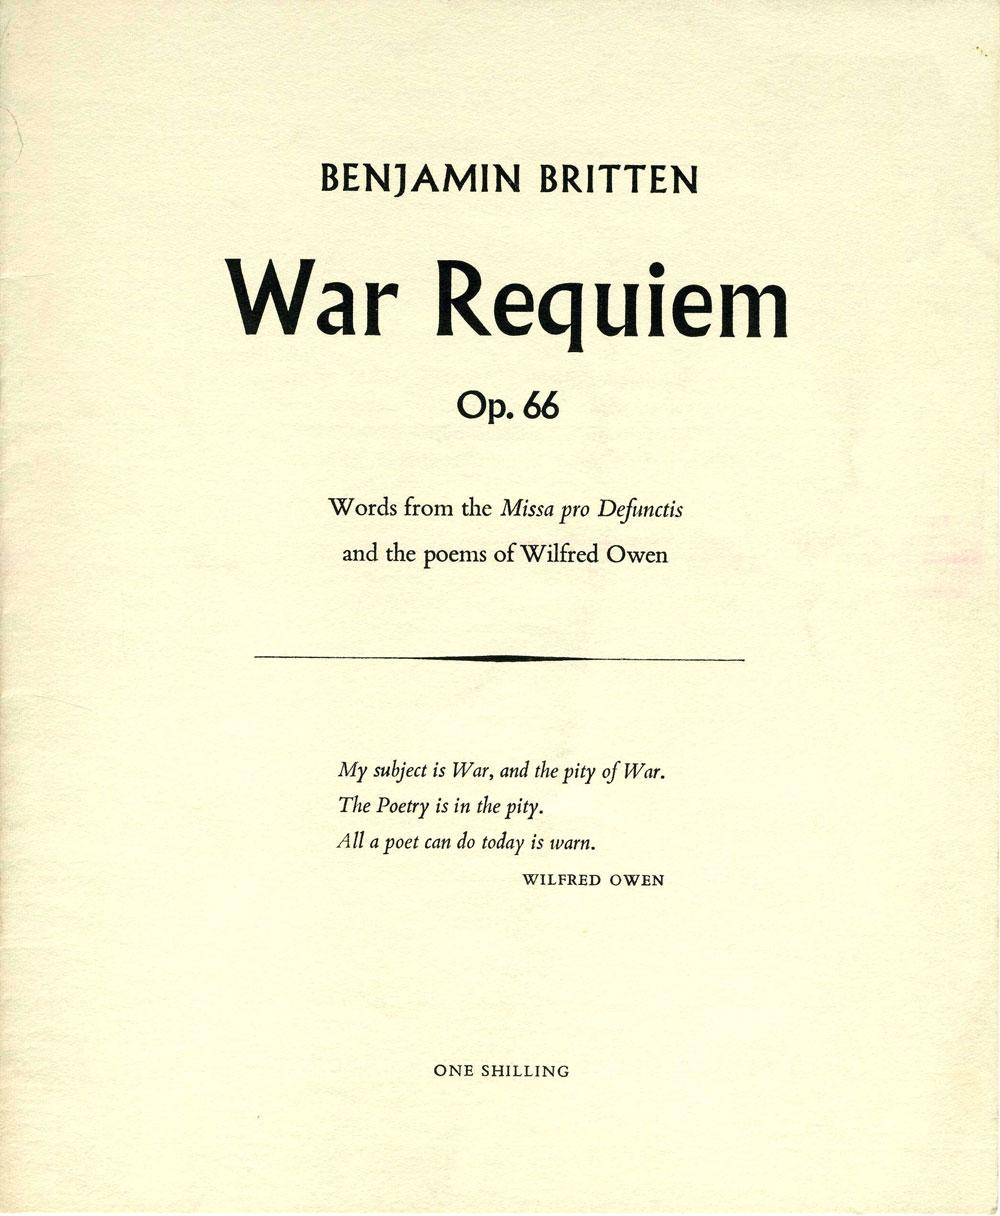 Benjamin Britten War Requiem Op 66 Words